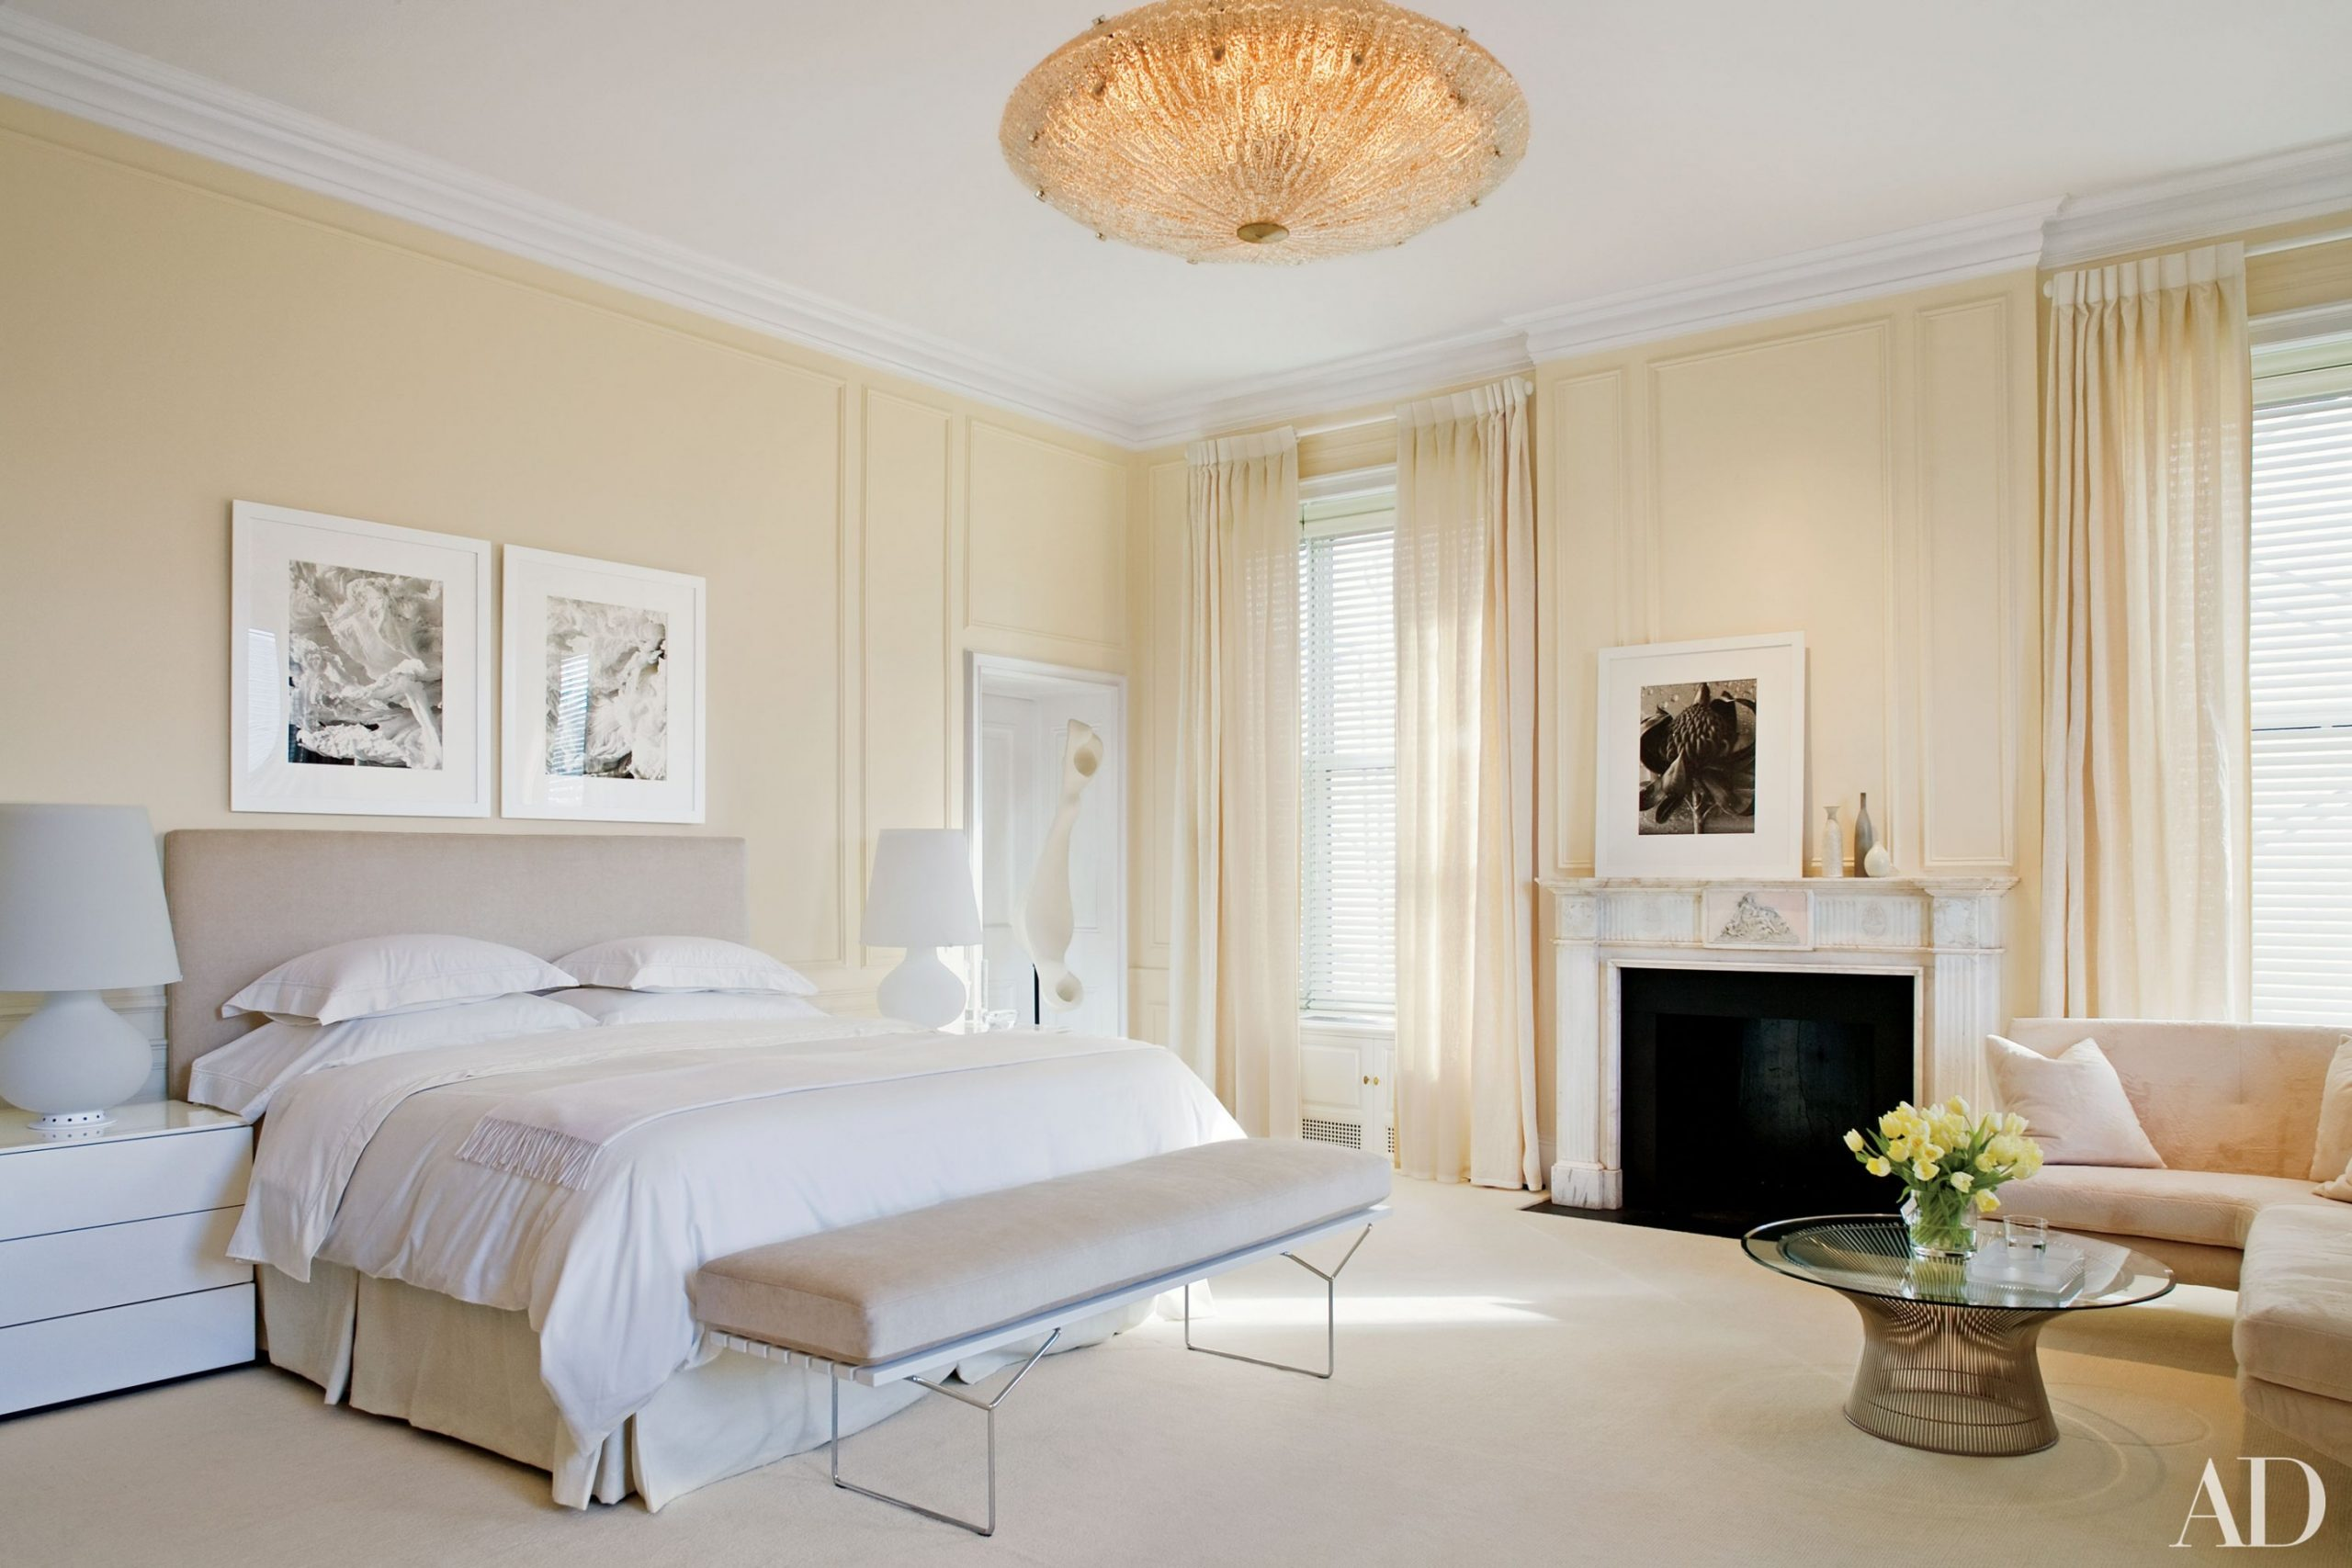 Master Bedroom Paint Ideas and Inspiration  Architectural Digest - Bedroom Ideas Paint